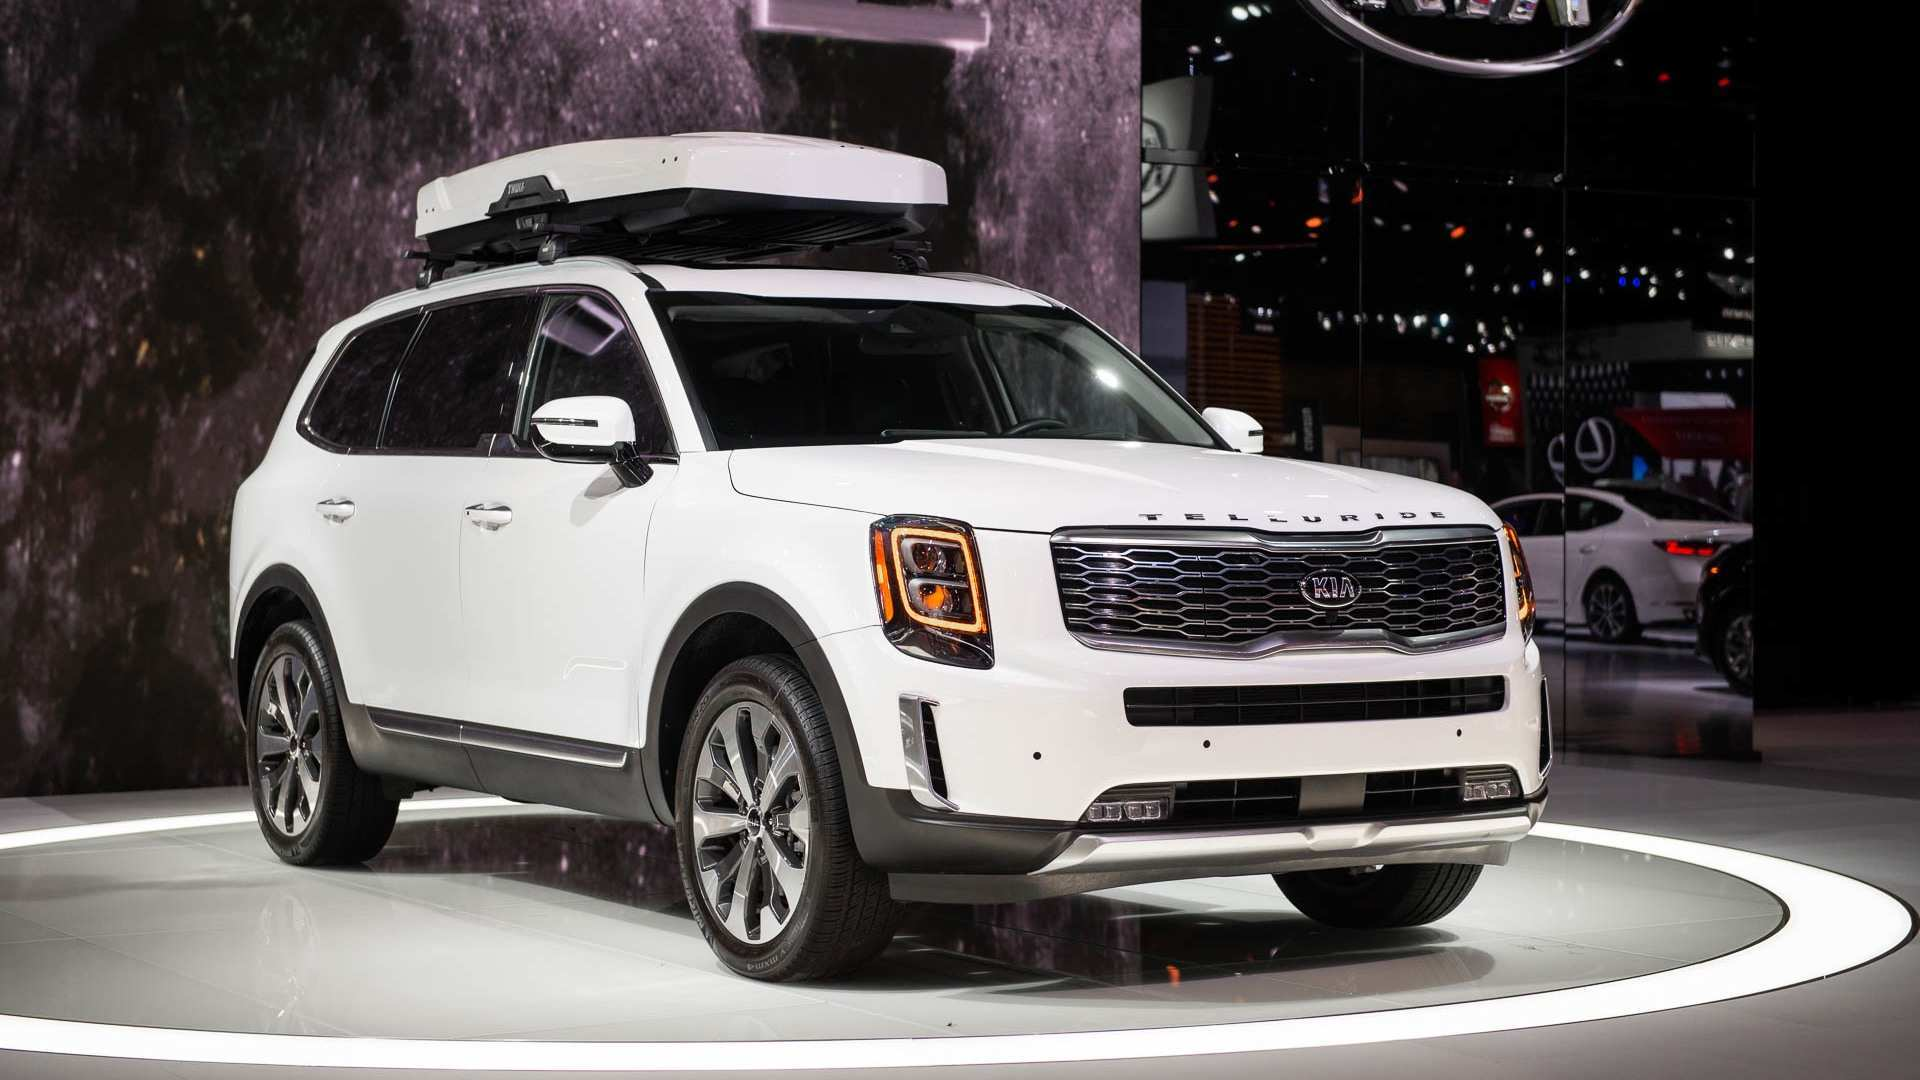 62 All New Telluride Kia 2019 New Model And Performance